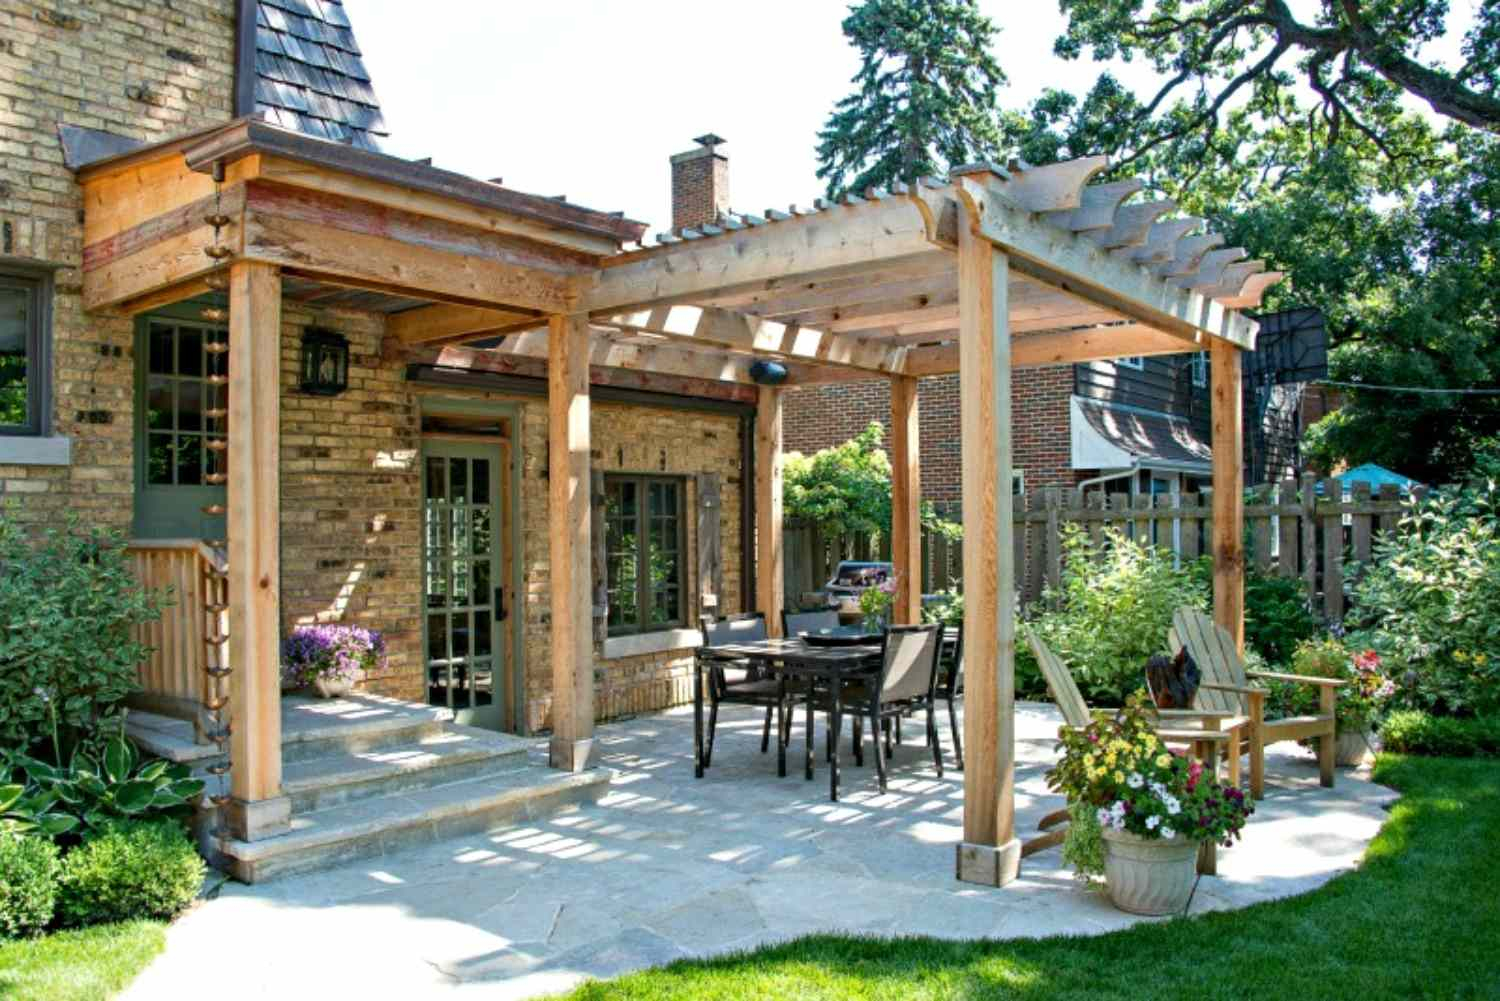 25 Perfect Pergola Design Ideas For Your Garden inside 10 Some of the Coolest Initiatives of How to Craft Pergola Backyard Ideas